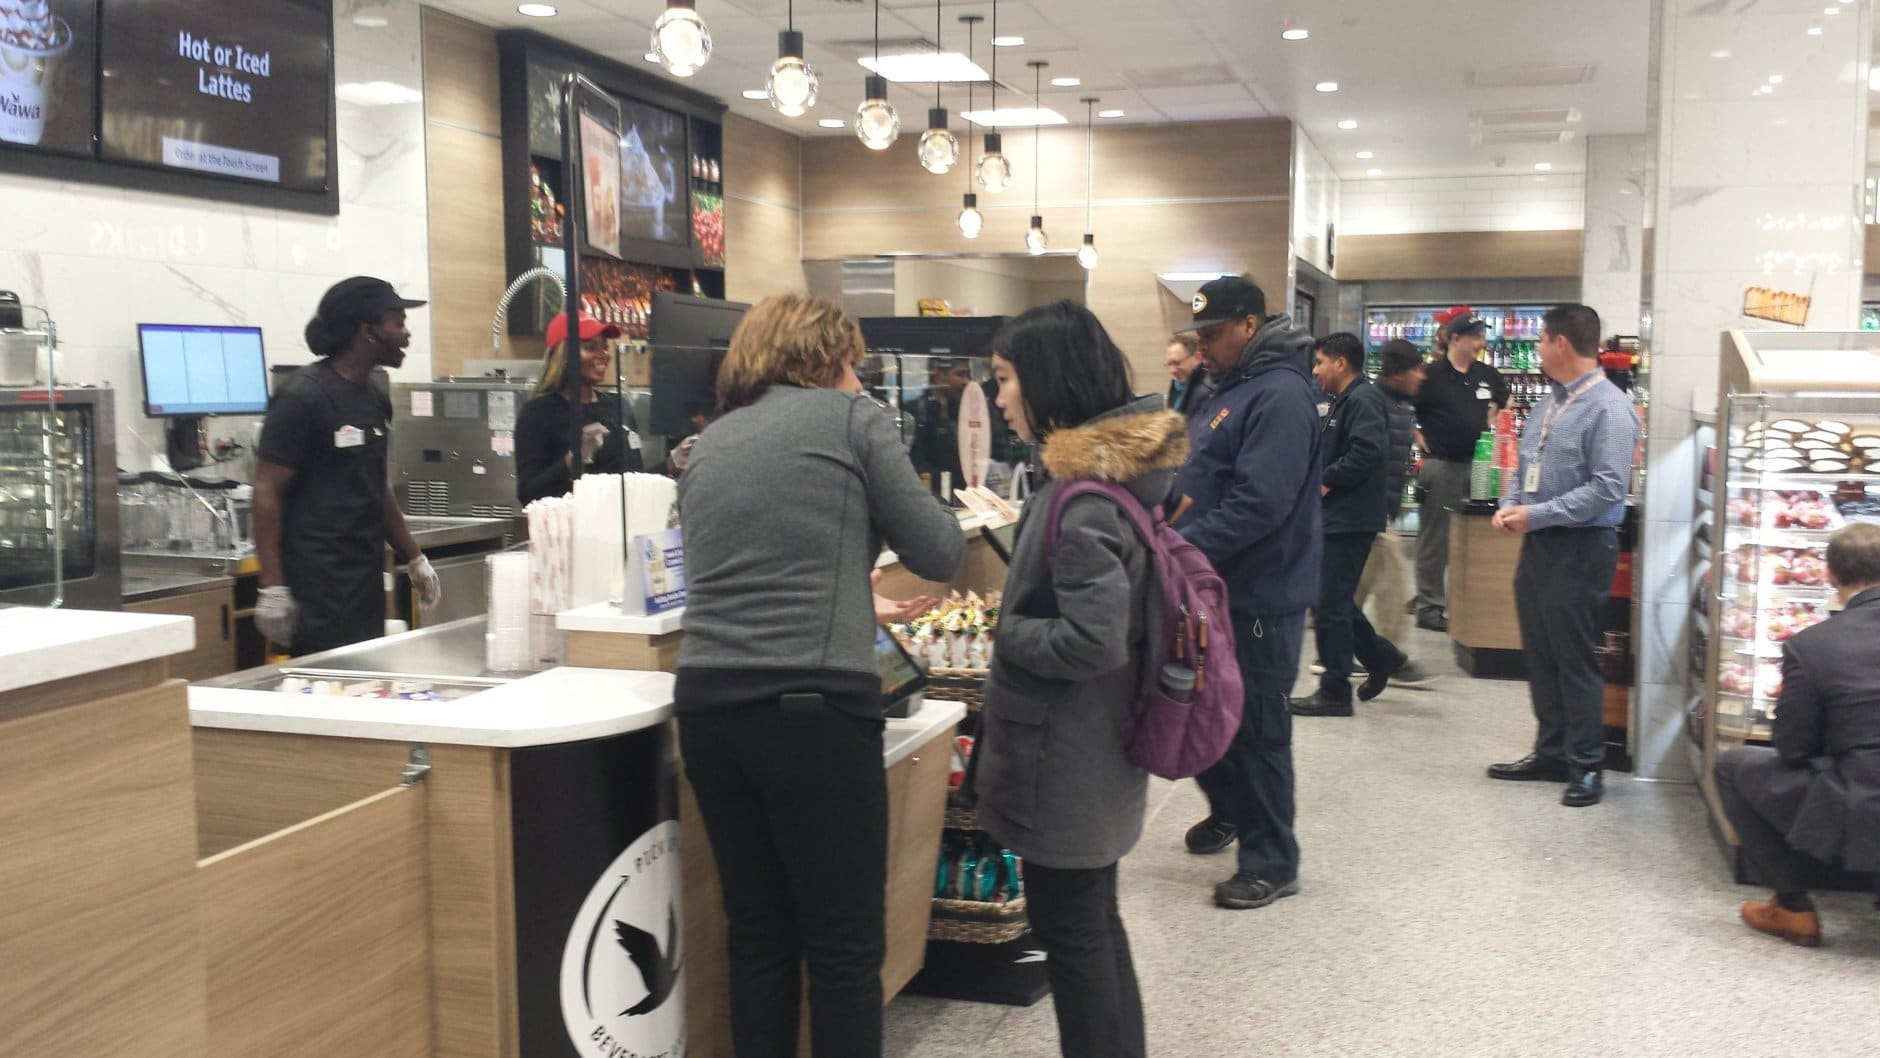 WAWA opened its second District location Thursday in Georgetown. (WTOP/Matt Ritter)